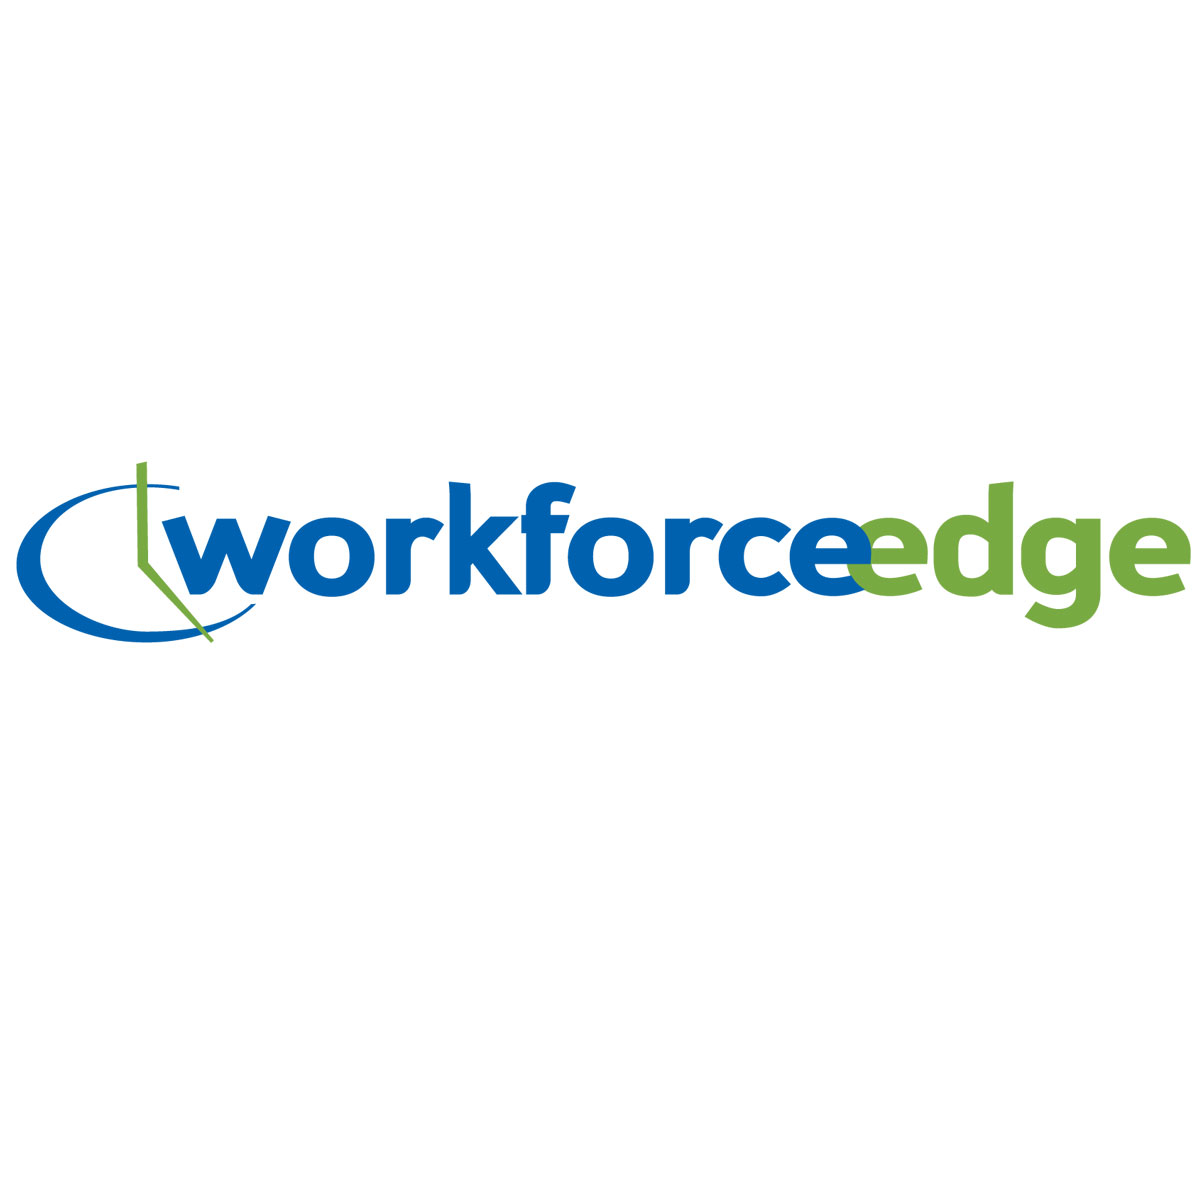 Workforce Edge logo